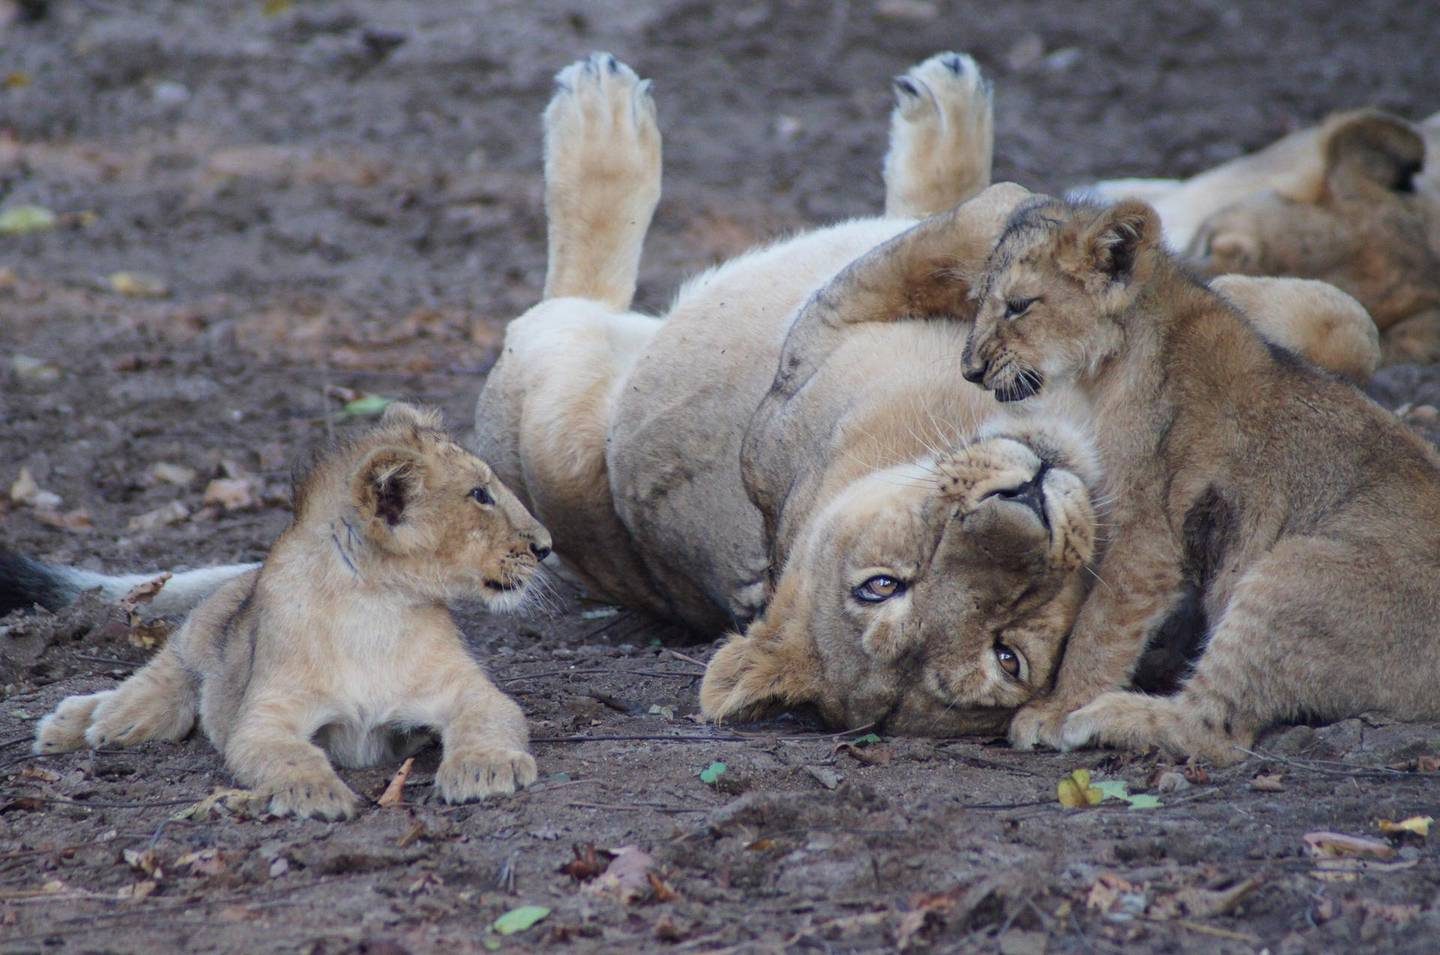 Female Asiatic Lion with cubs in Gujarat India. Courtesy Zoological Society of London